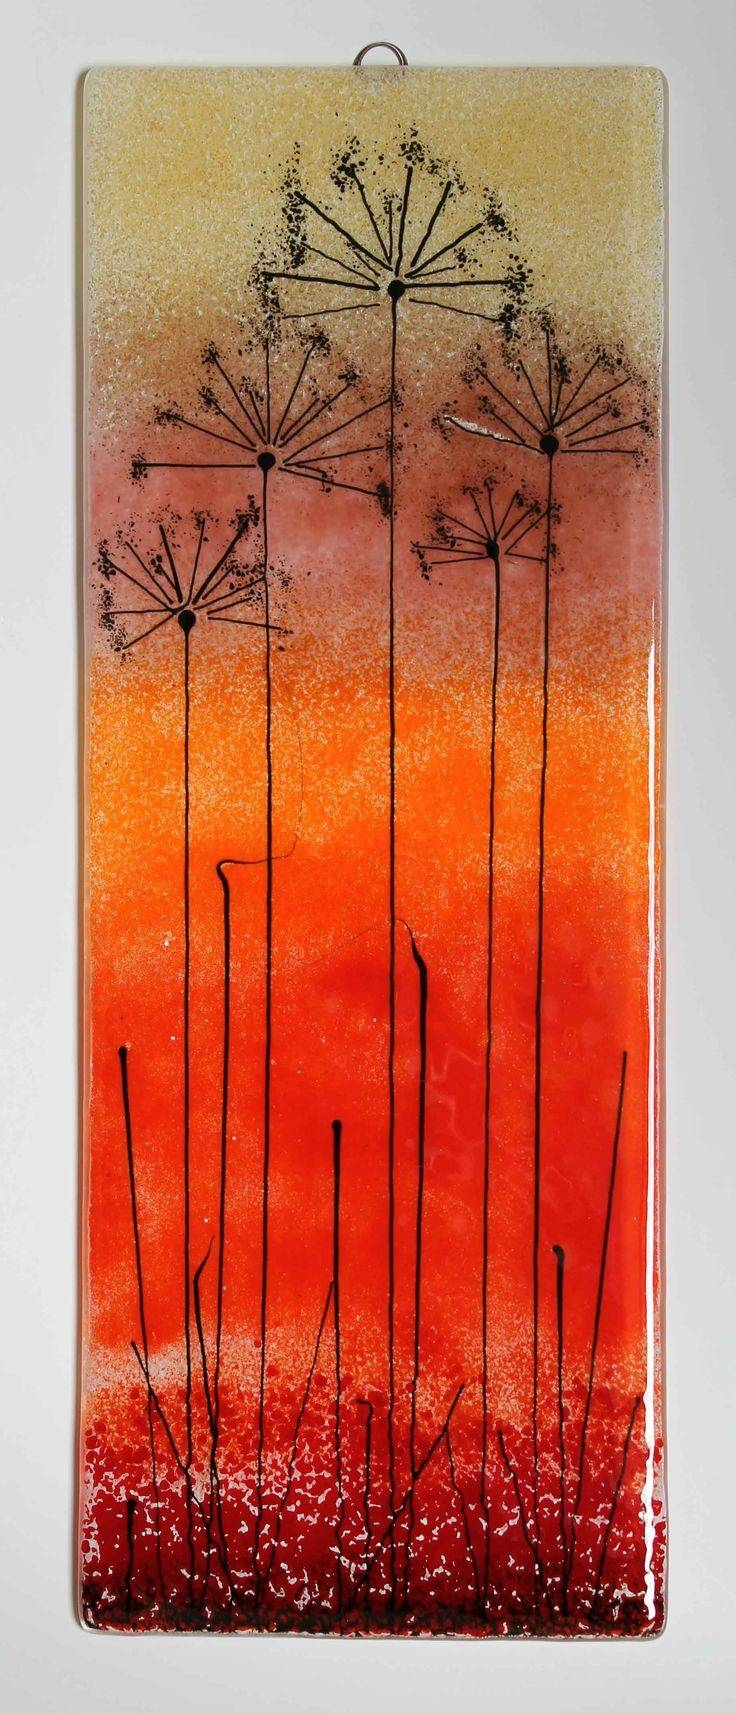 1915 Best Fused Glass – Artsy Fartsy Images On Pinterest | Artsy Inside Most Recent Fused Glass Wall Art Panels (View 6 of 25)